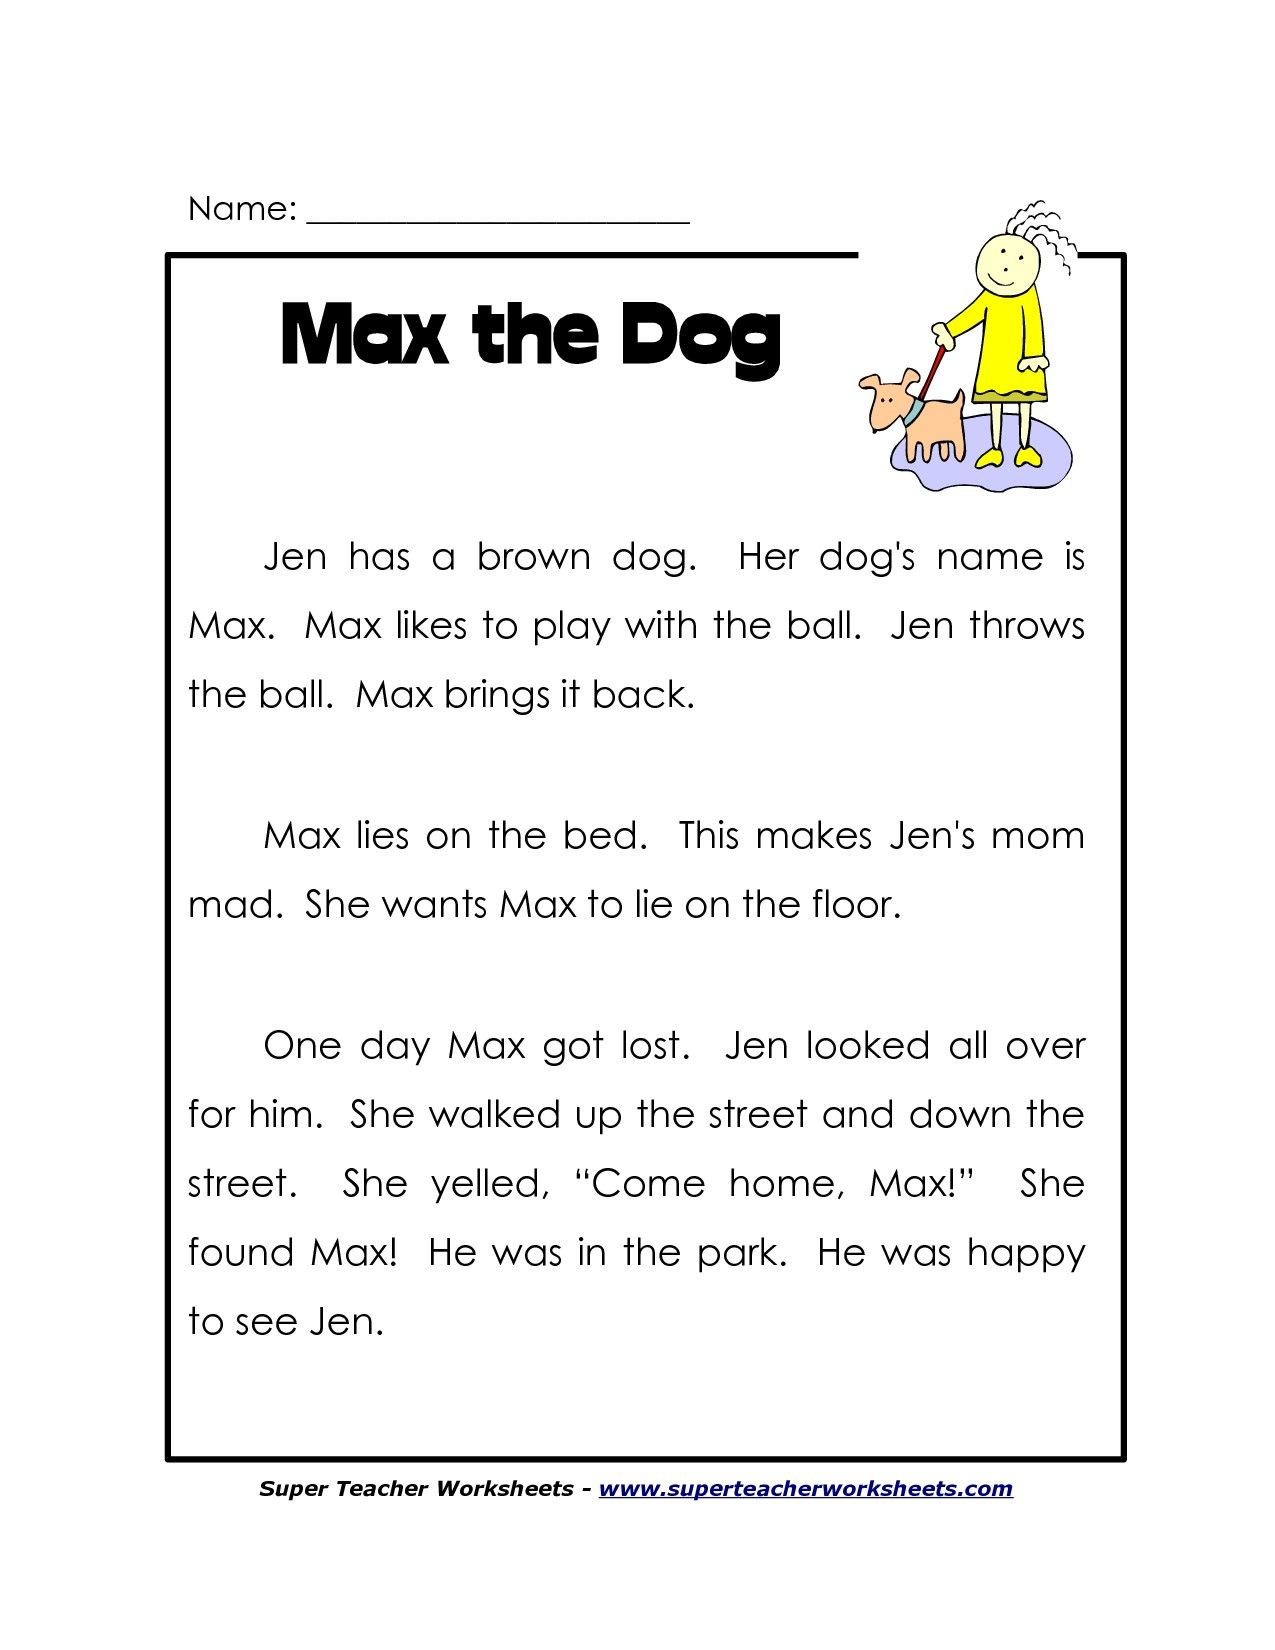 worksheet 1st Grade Reading Comprehension Worksheets Free 1st grade reading worksheets free lots more on superteacherworksheets com